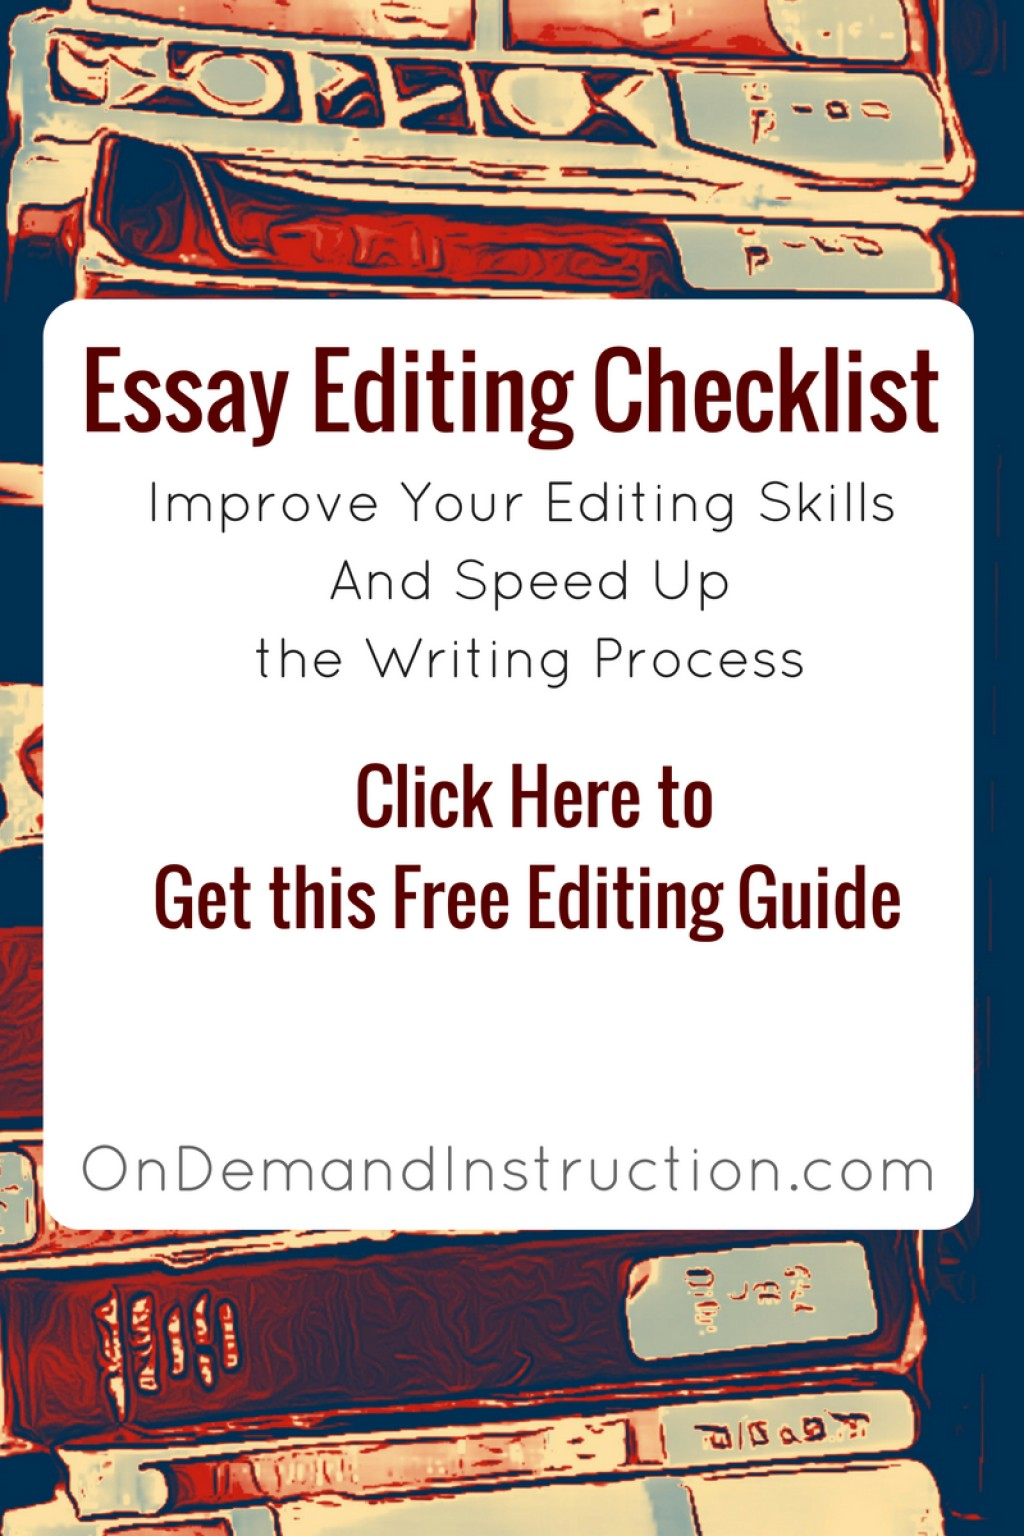 016 Free Online Essay Editor Rare Proofreading Software Ielts Correction Large